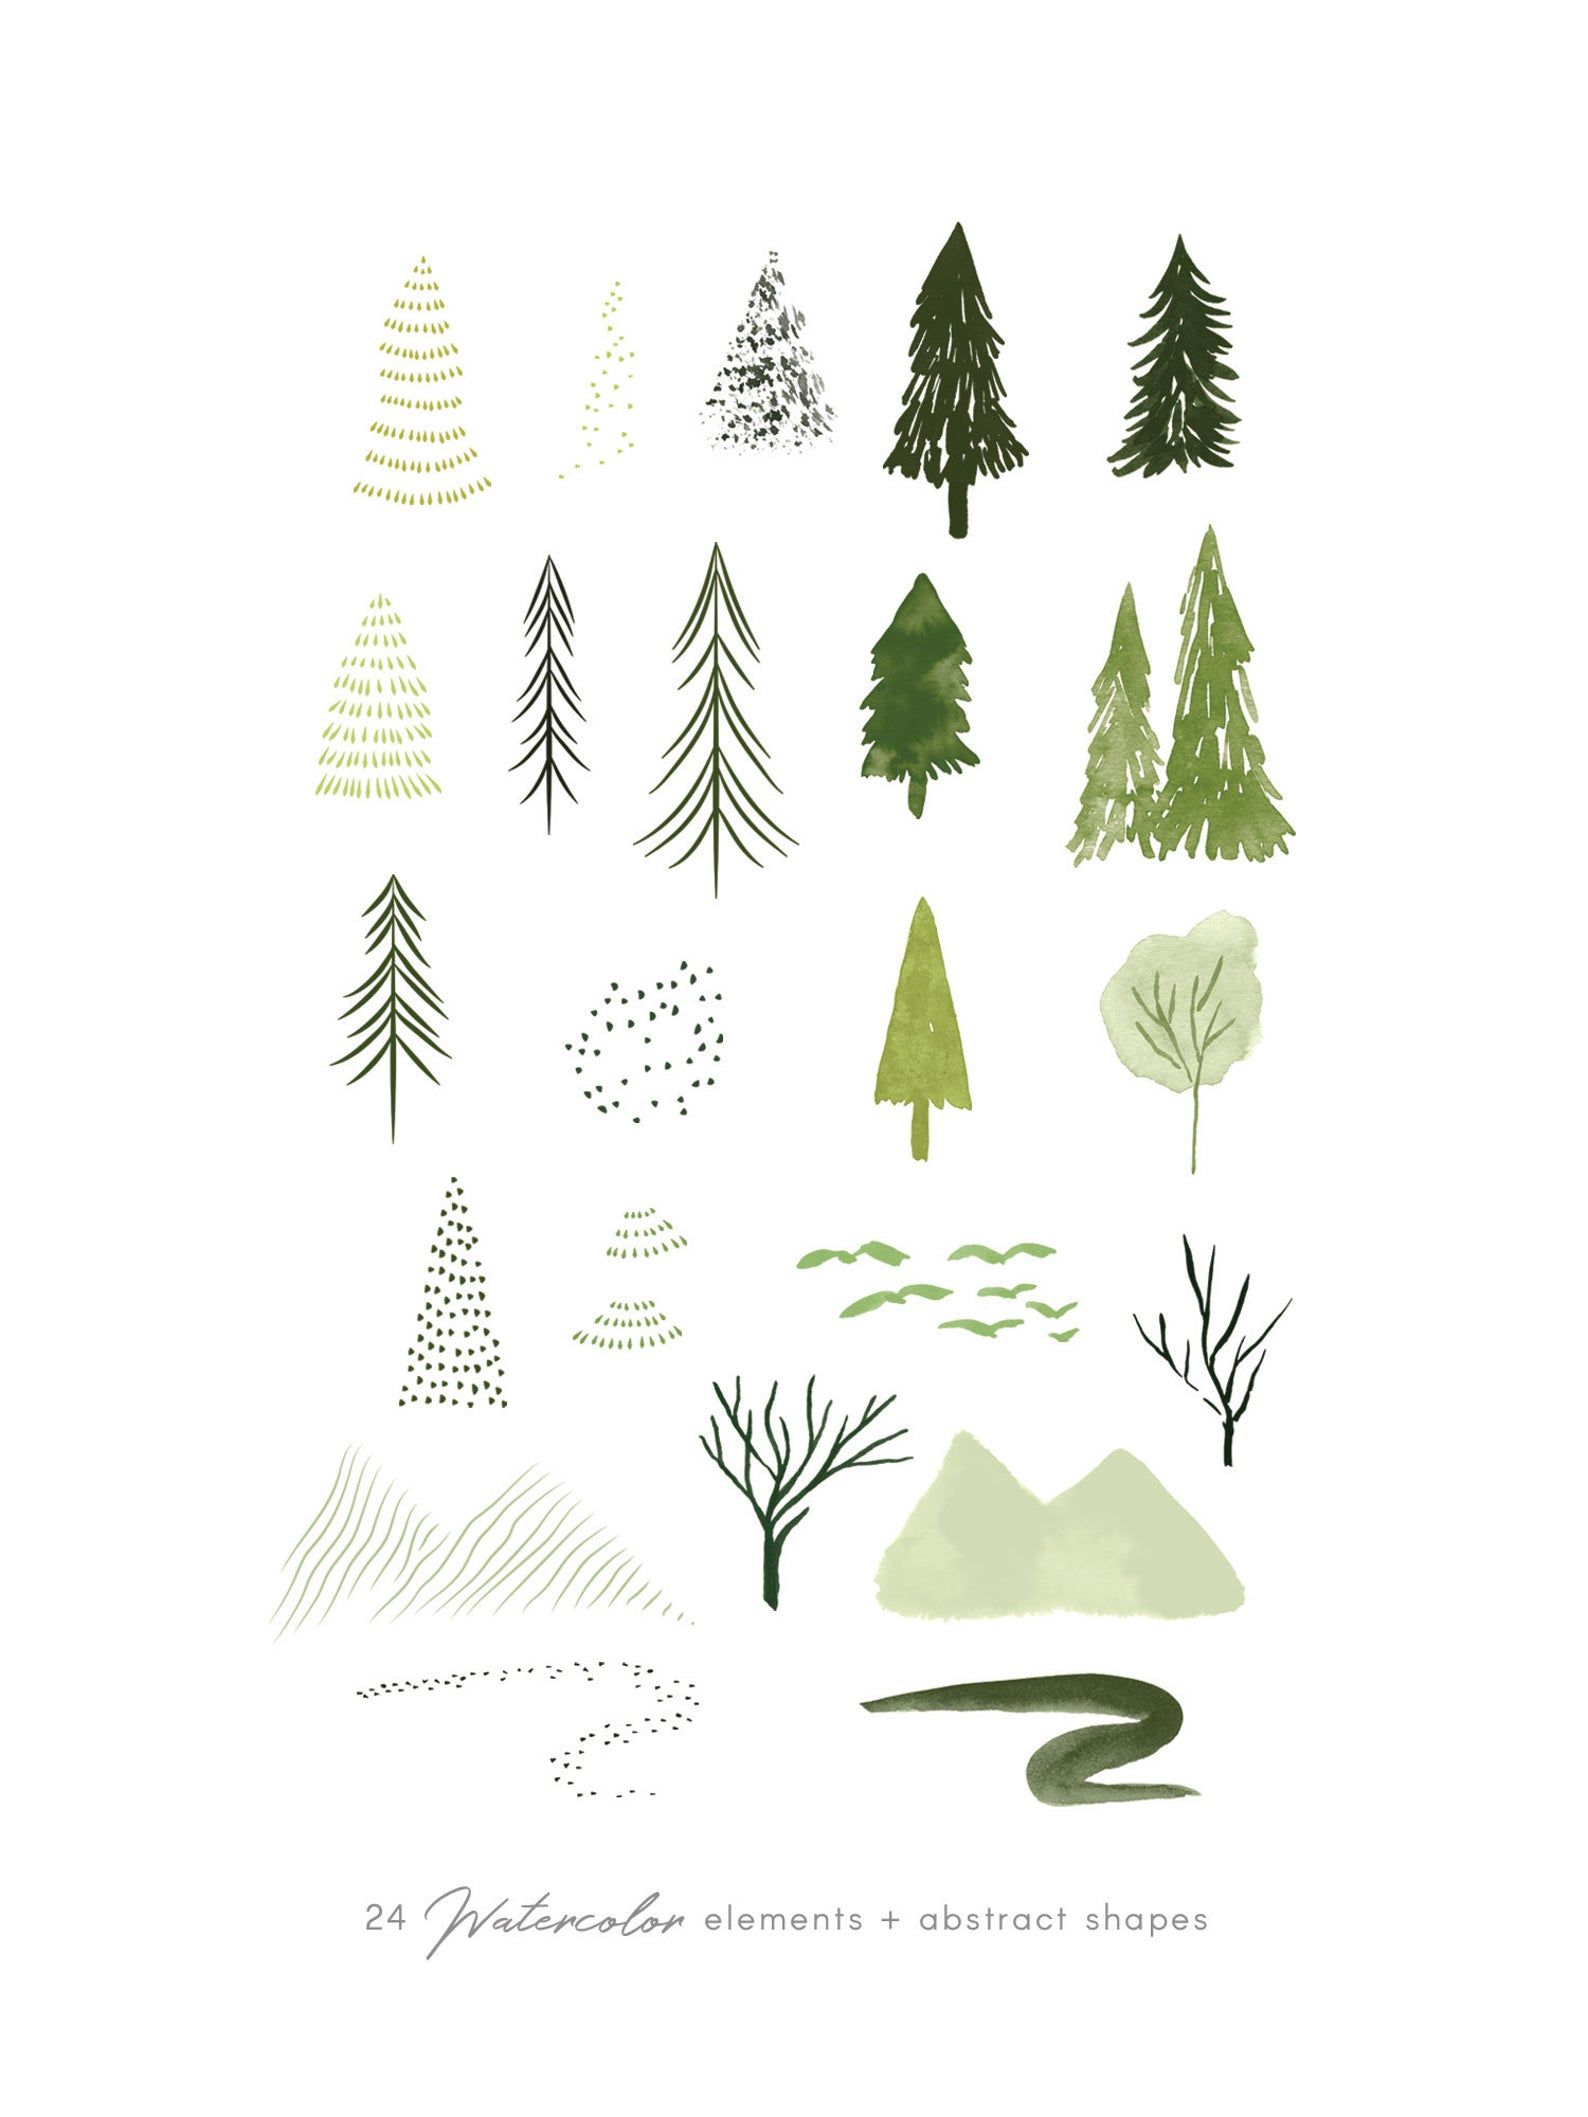 Watercolor forest trees clipart set, abstract wood